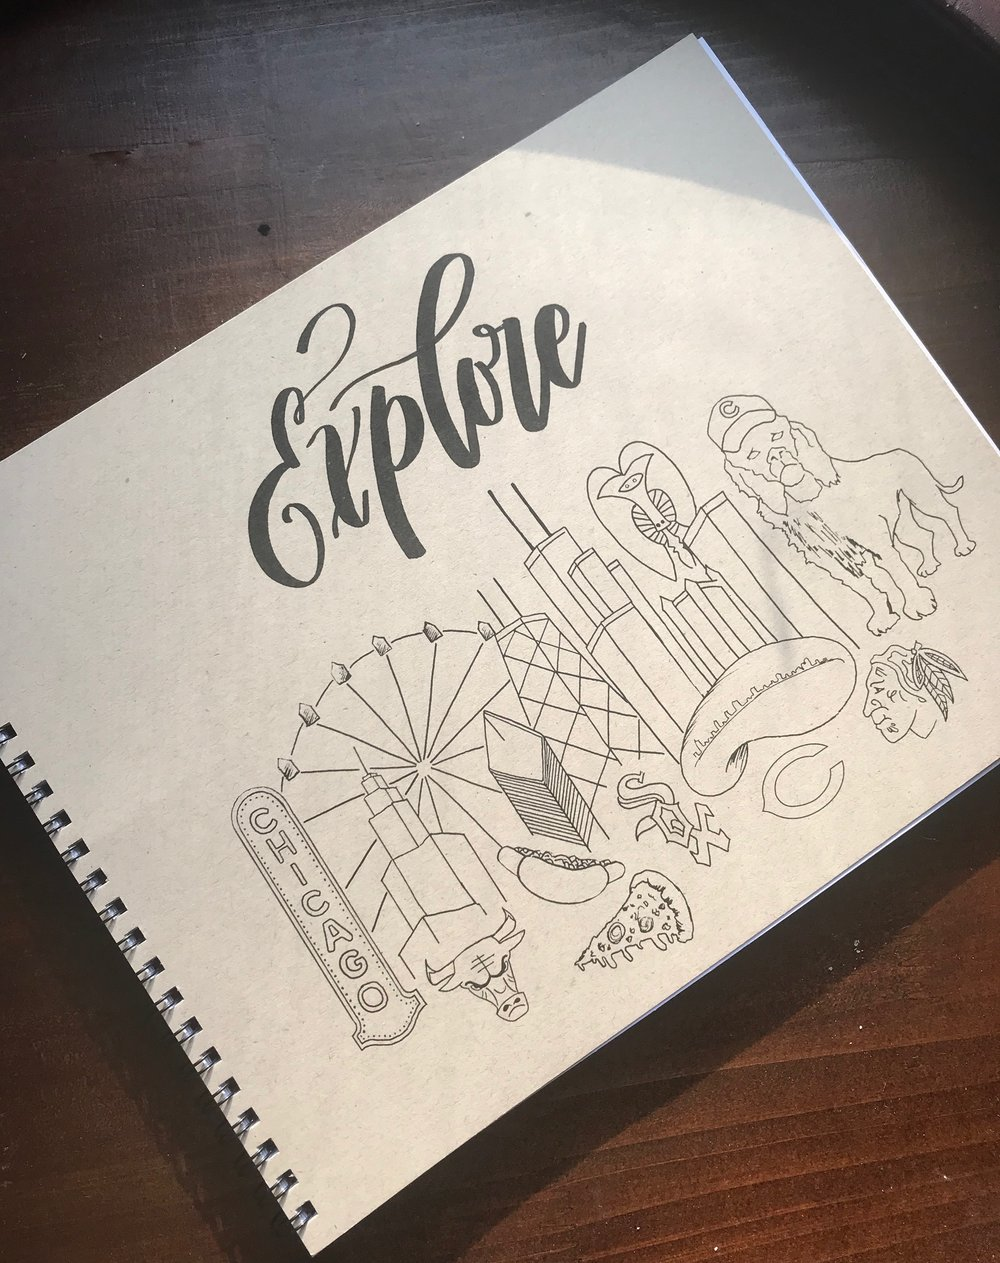 I based the cover of this sketchbook from a  drawing I did on a welcome mirror at Venue SIX10  last year! I took a pic of the mirror, scanned it in my computer, cleaned it up and added to it. Being a native Chicagoan I was pretty proud of how it came out. Perfectly imperfect but captures the essence of our hard working, much maligned, world class city. Only 2 left in stock, order today!